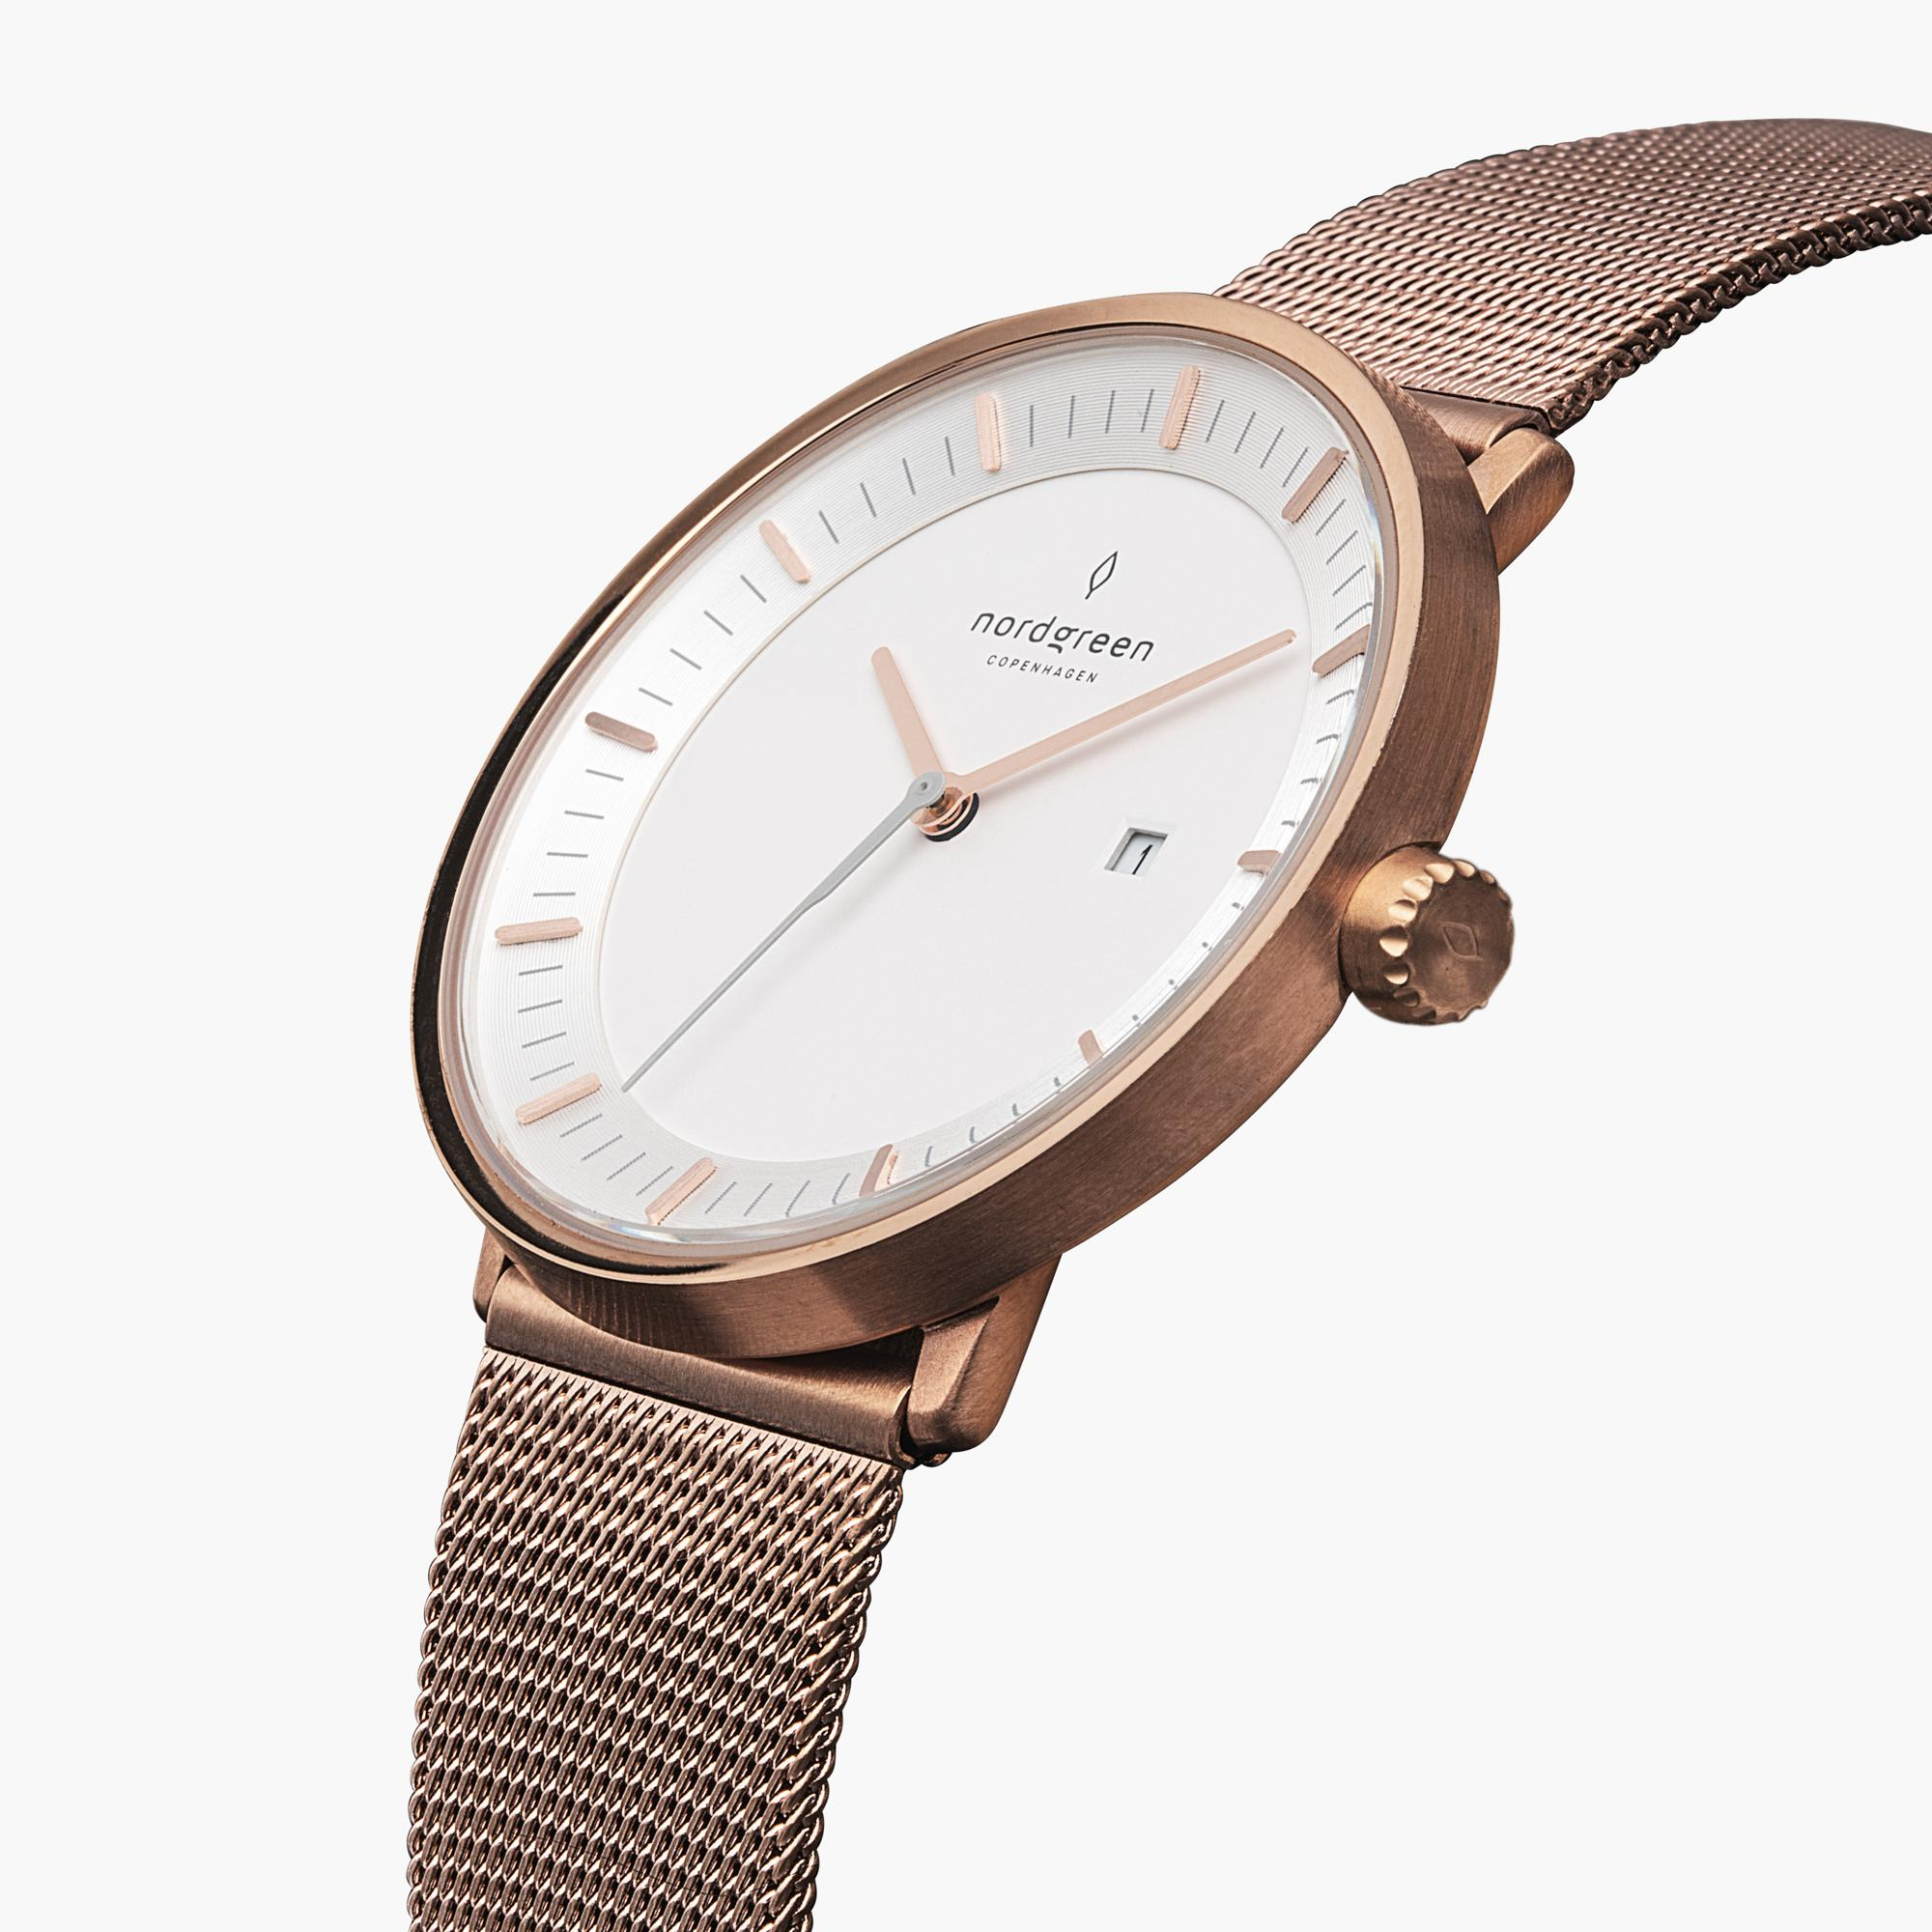 Nordgreen watches for Valentines's day